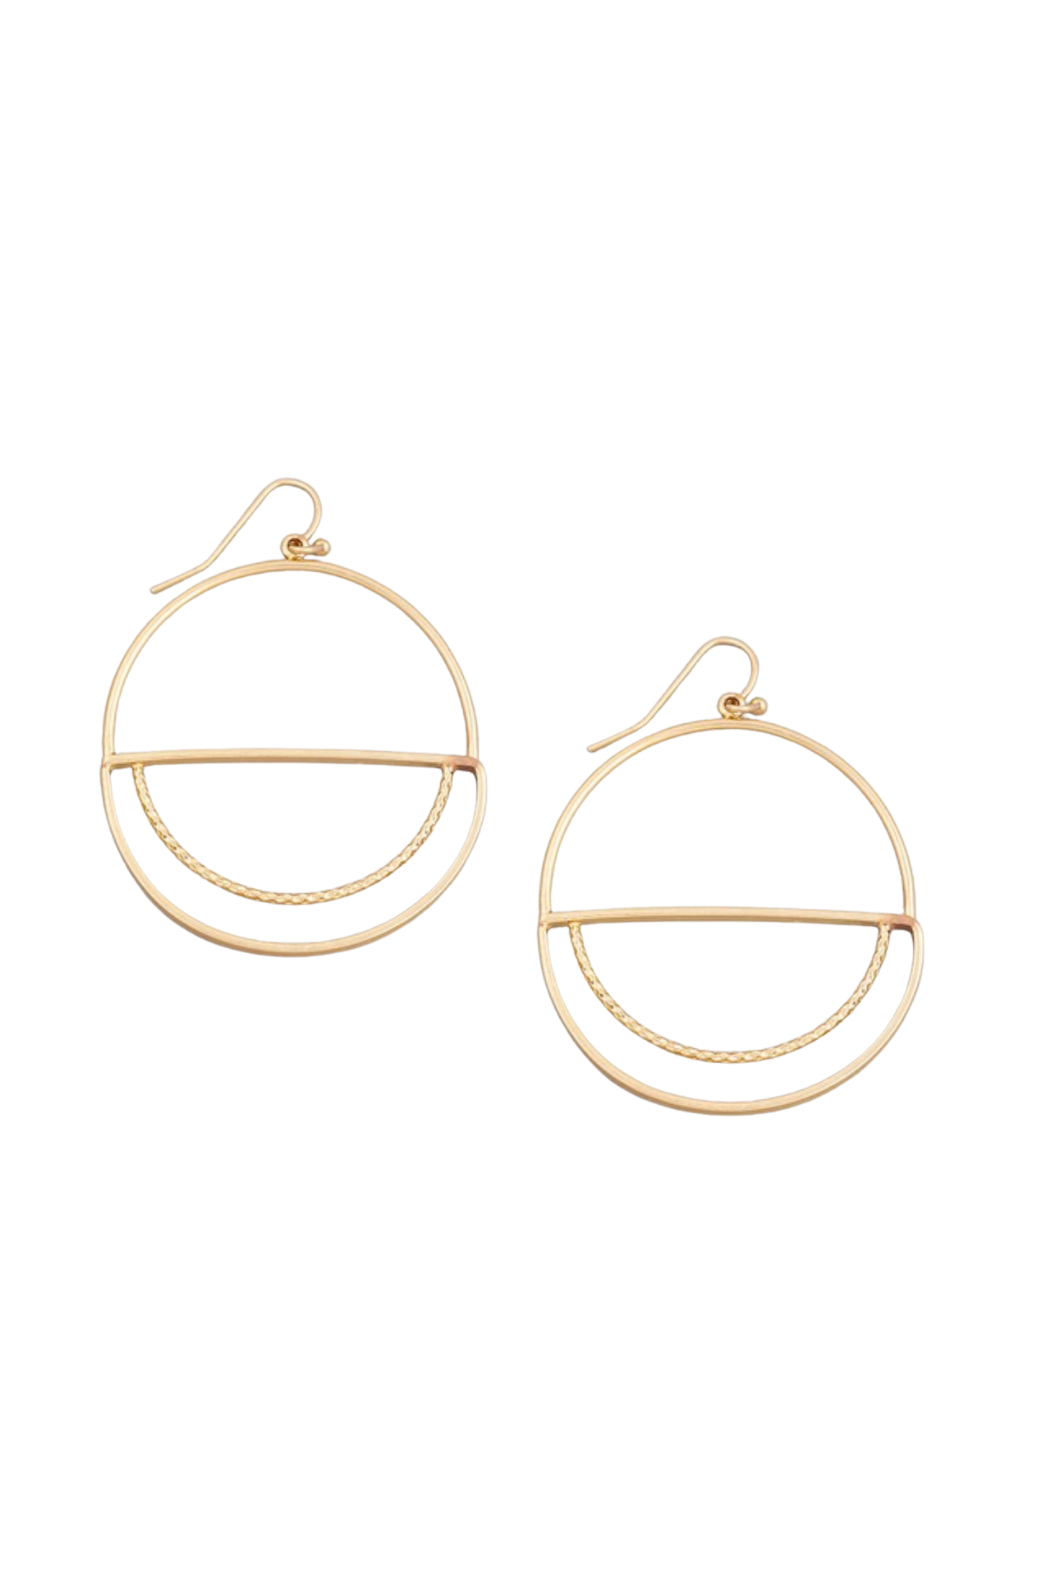 Fame Accessories Round Flat Drop Earrings - Main Image